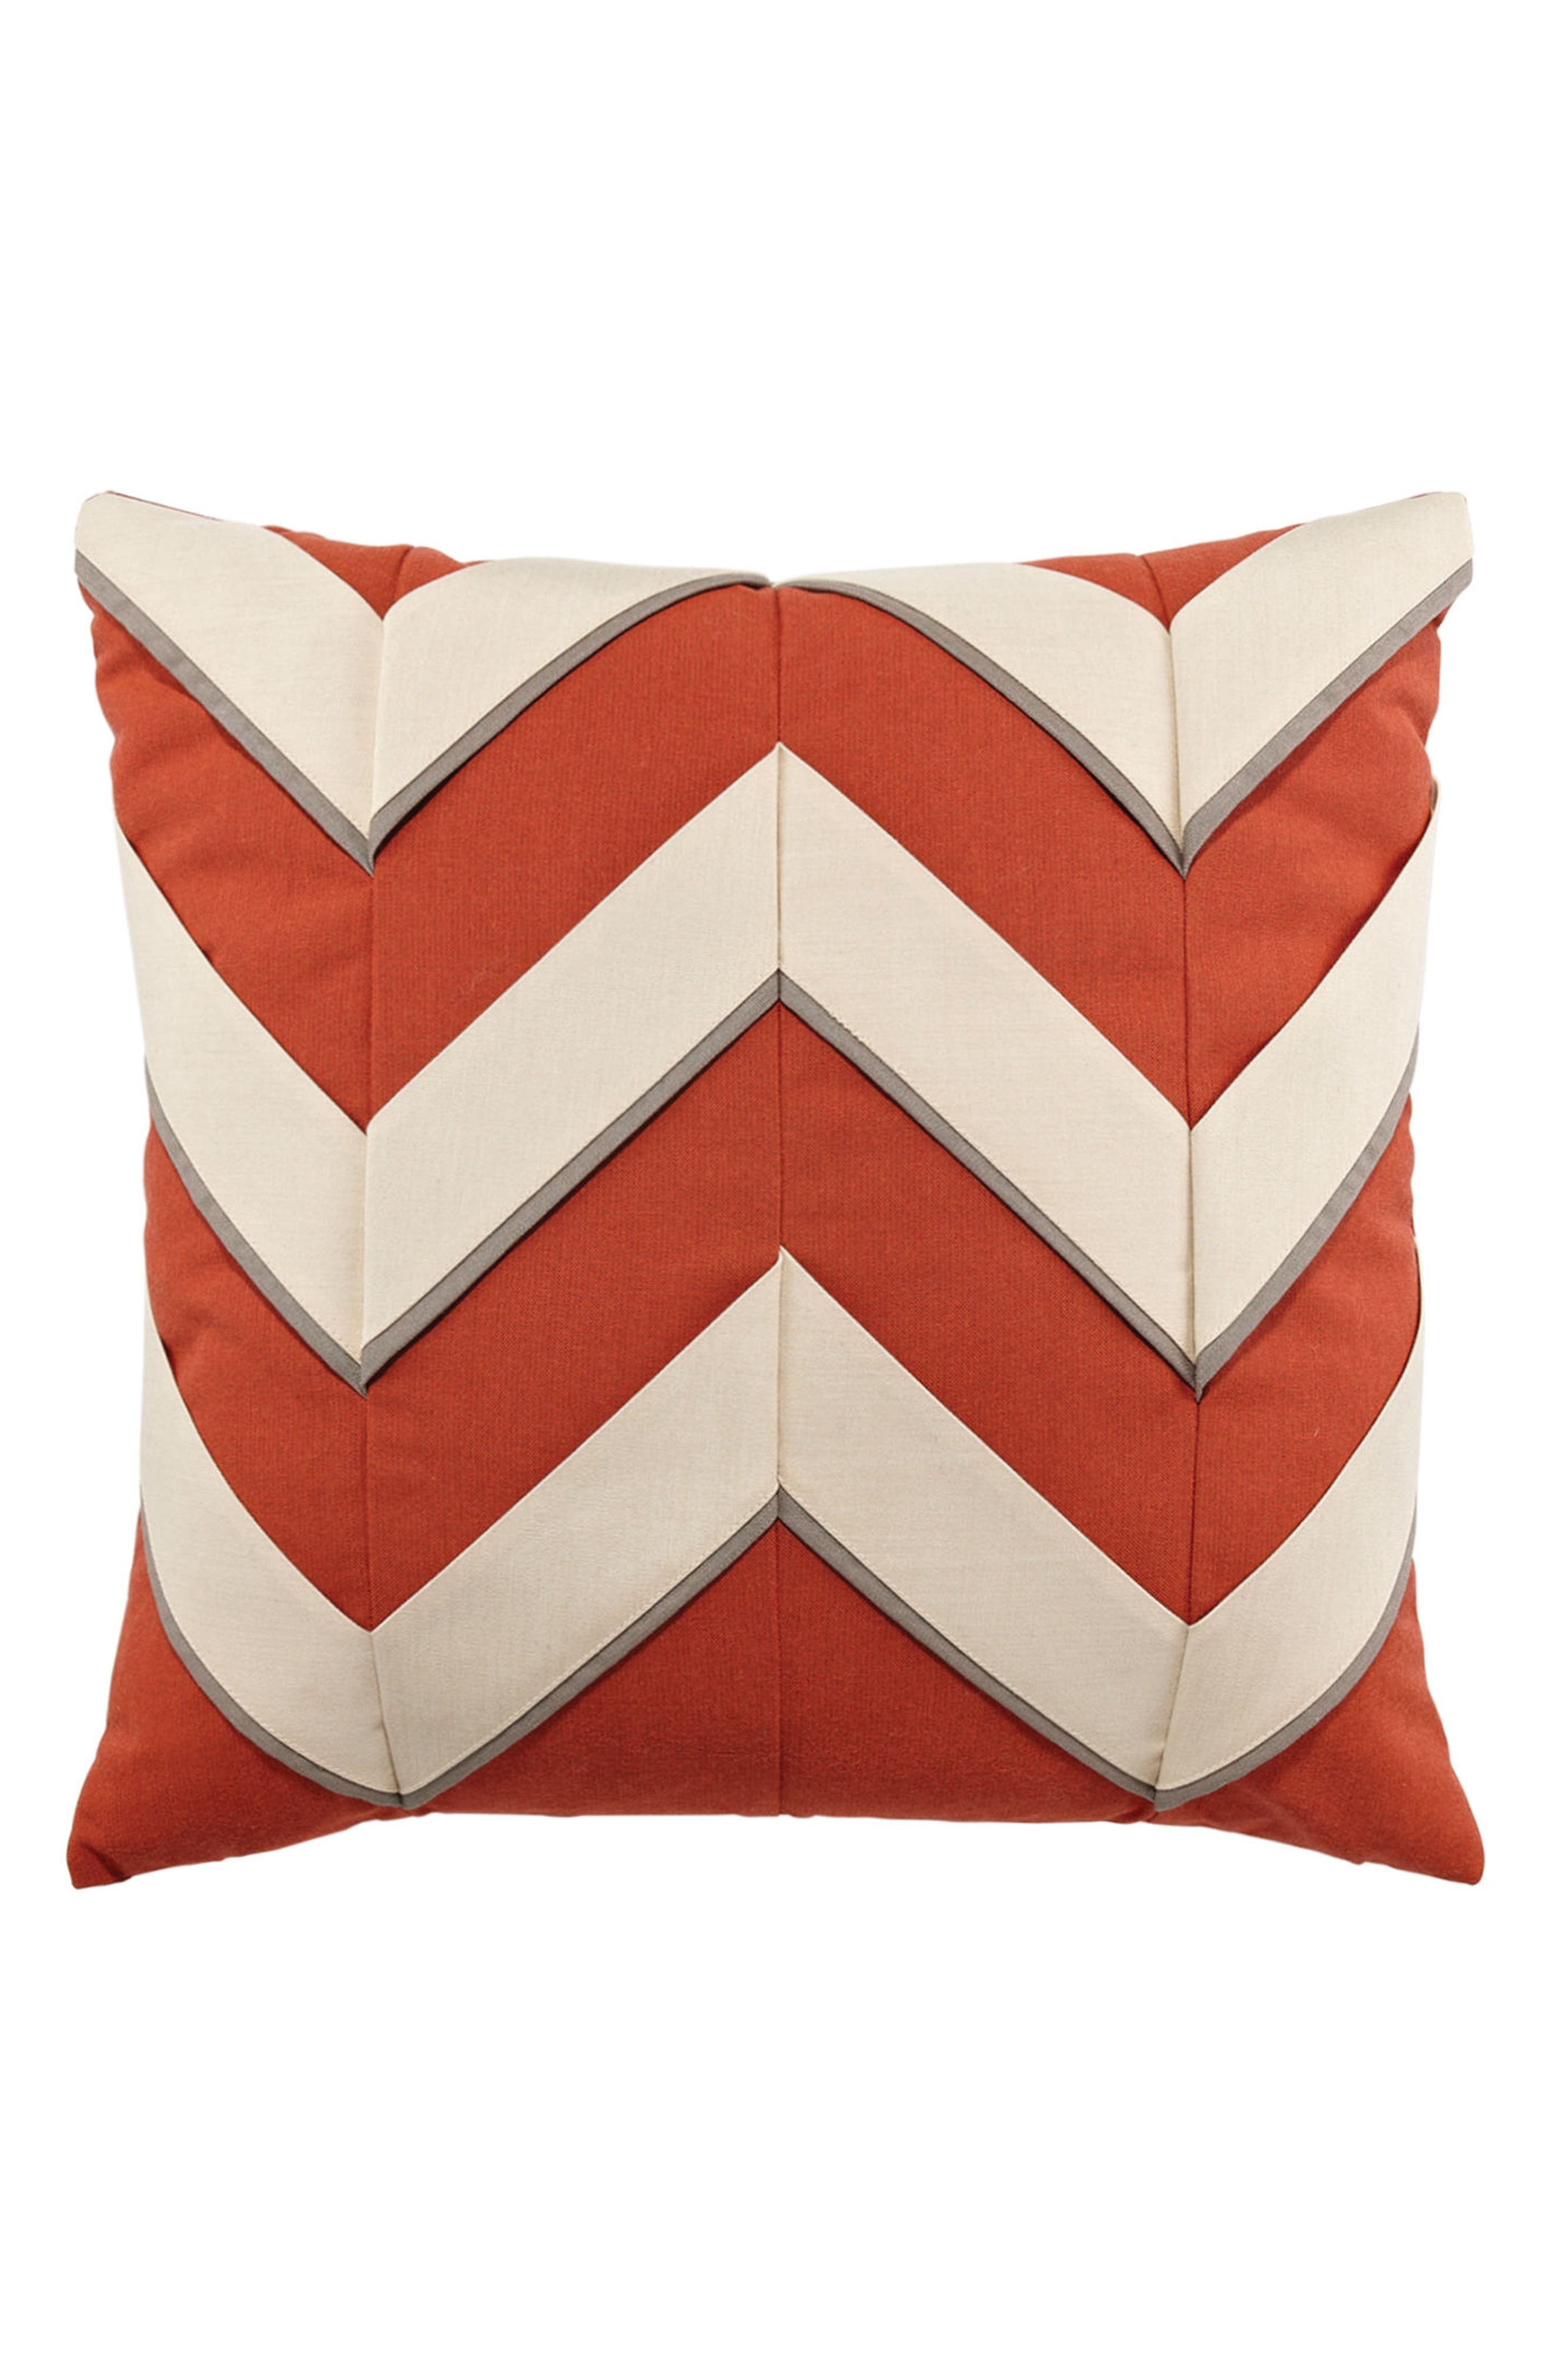 Coral Cruise Indoor/Outdoor Accent Pillow,                             Main thumbnail 1, color,                             Orange/ Ivory